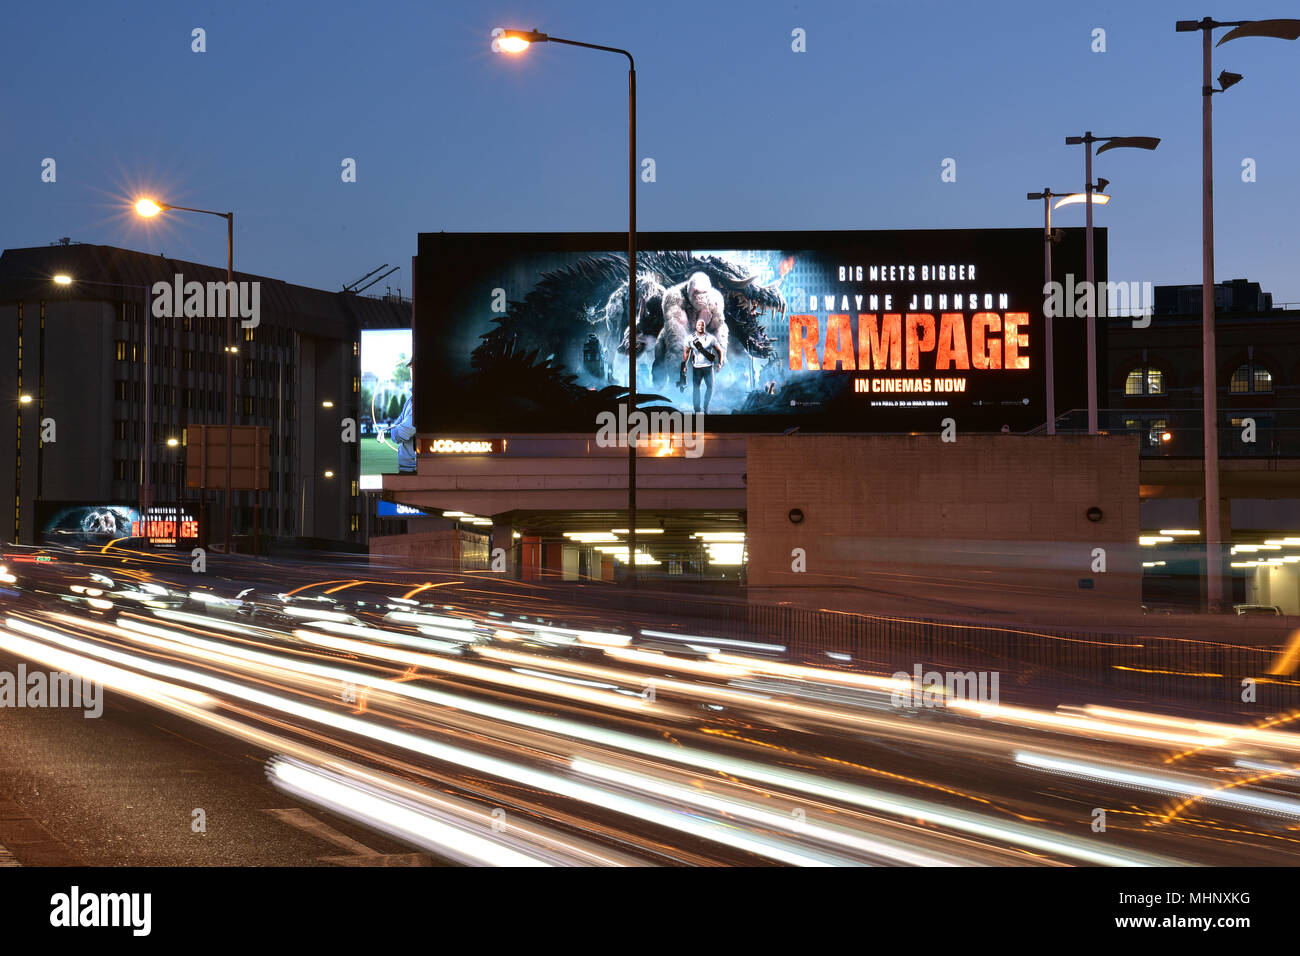 Digital advertising hoardings promoting the film Rampage on the Talgarth Road, Fulham  in West London, UK. - Stock Image